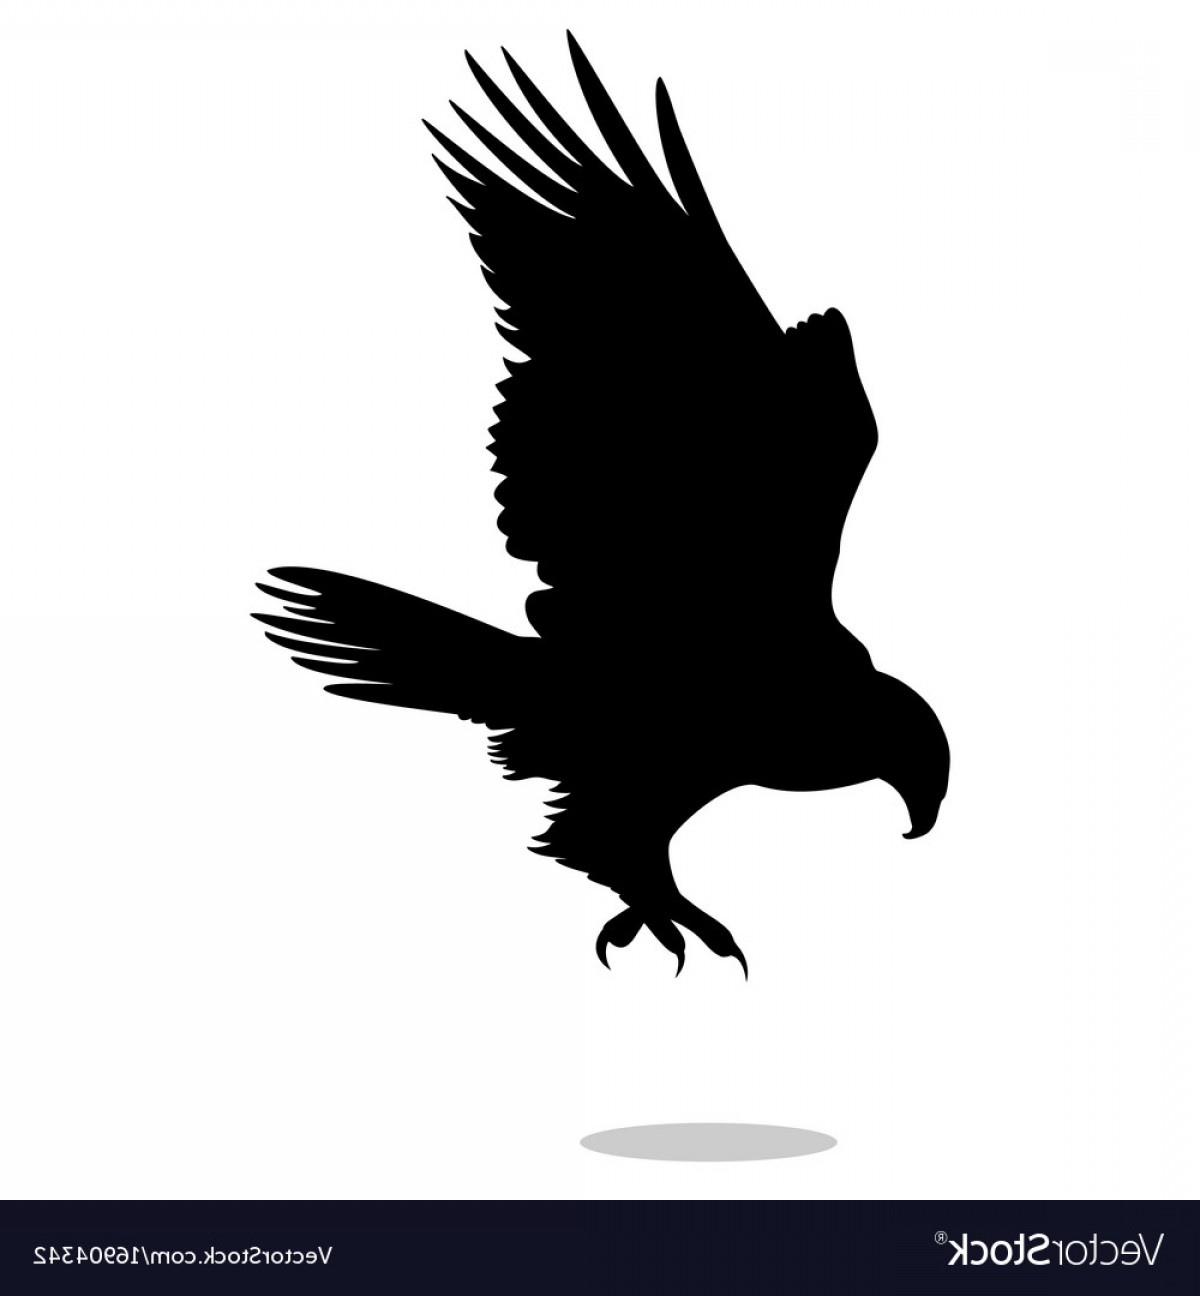 Falcon Silhouette Vector: Hawk Eagle Falcon Bird Black Silhouette Animal Vector